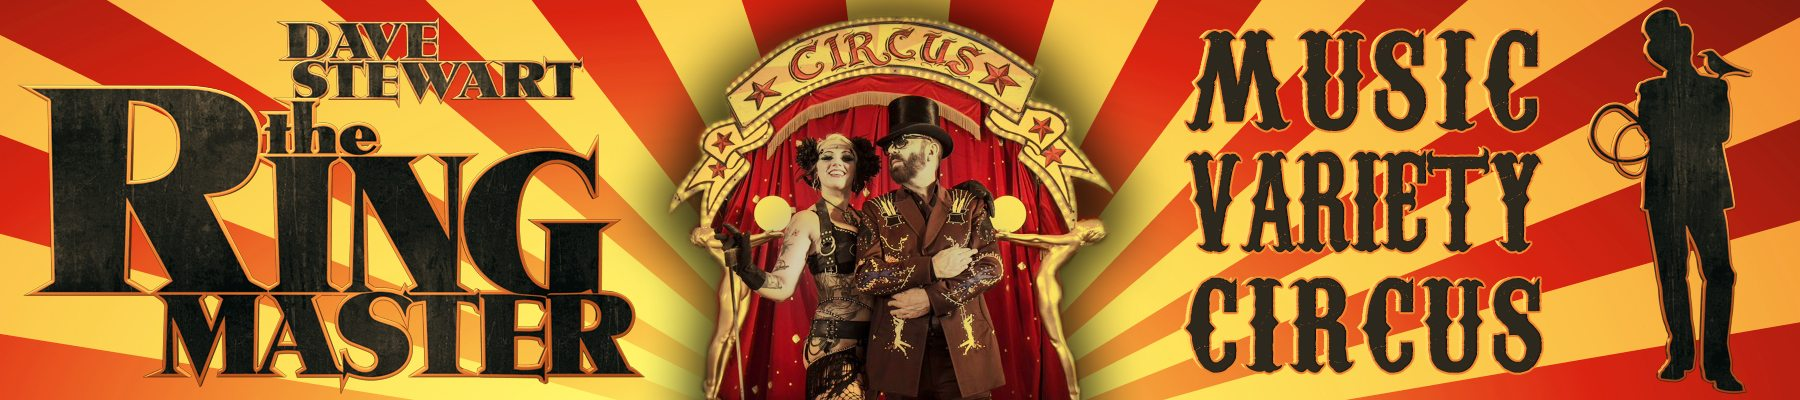 Watch the pilot episode of The Ringmaster now on Bitesize TV – Dave Stewart's new crazy TV Show!